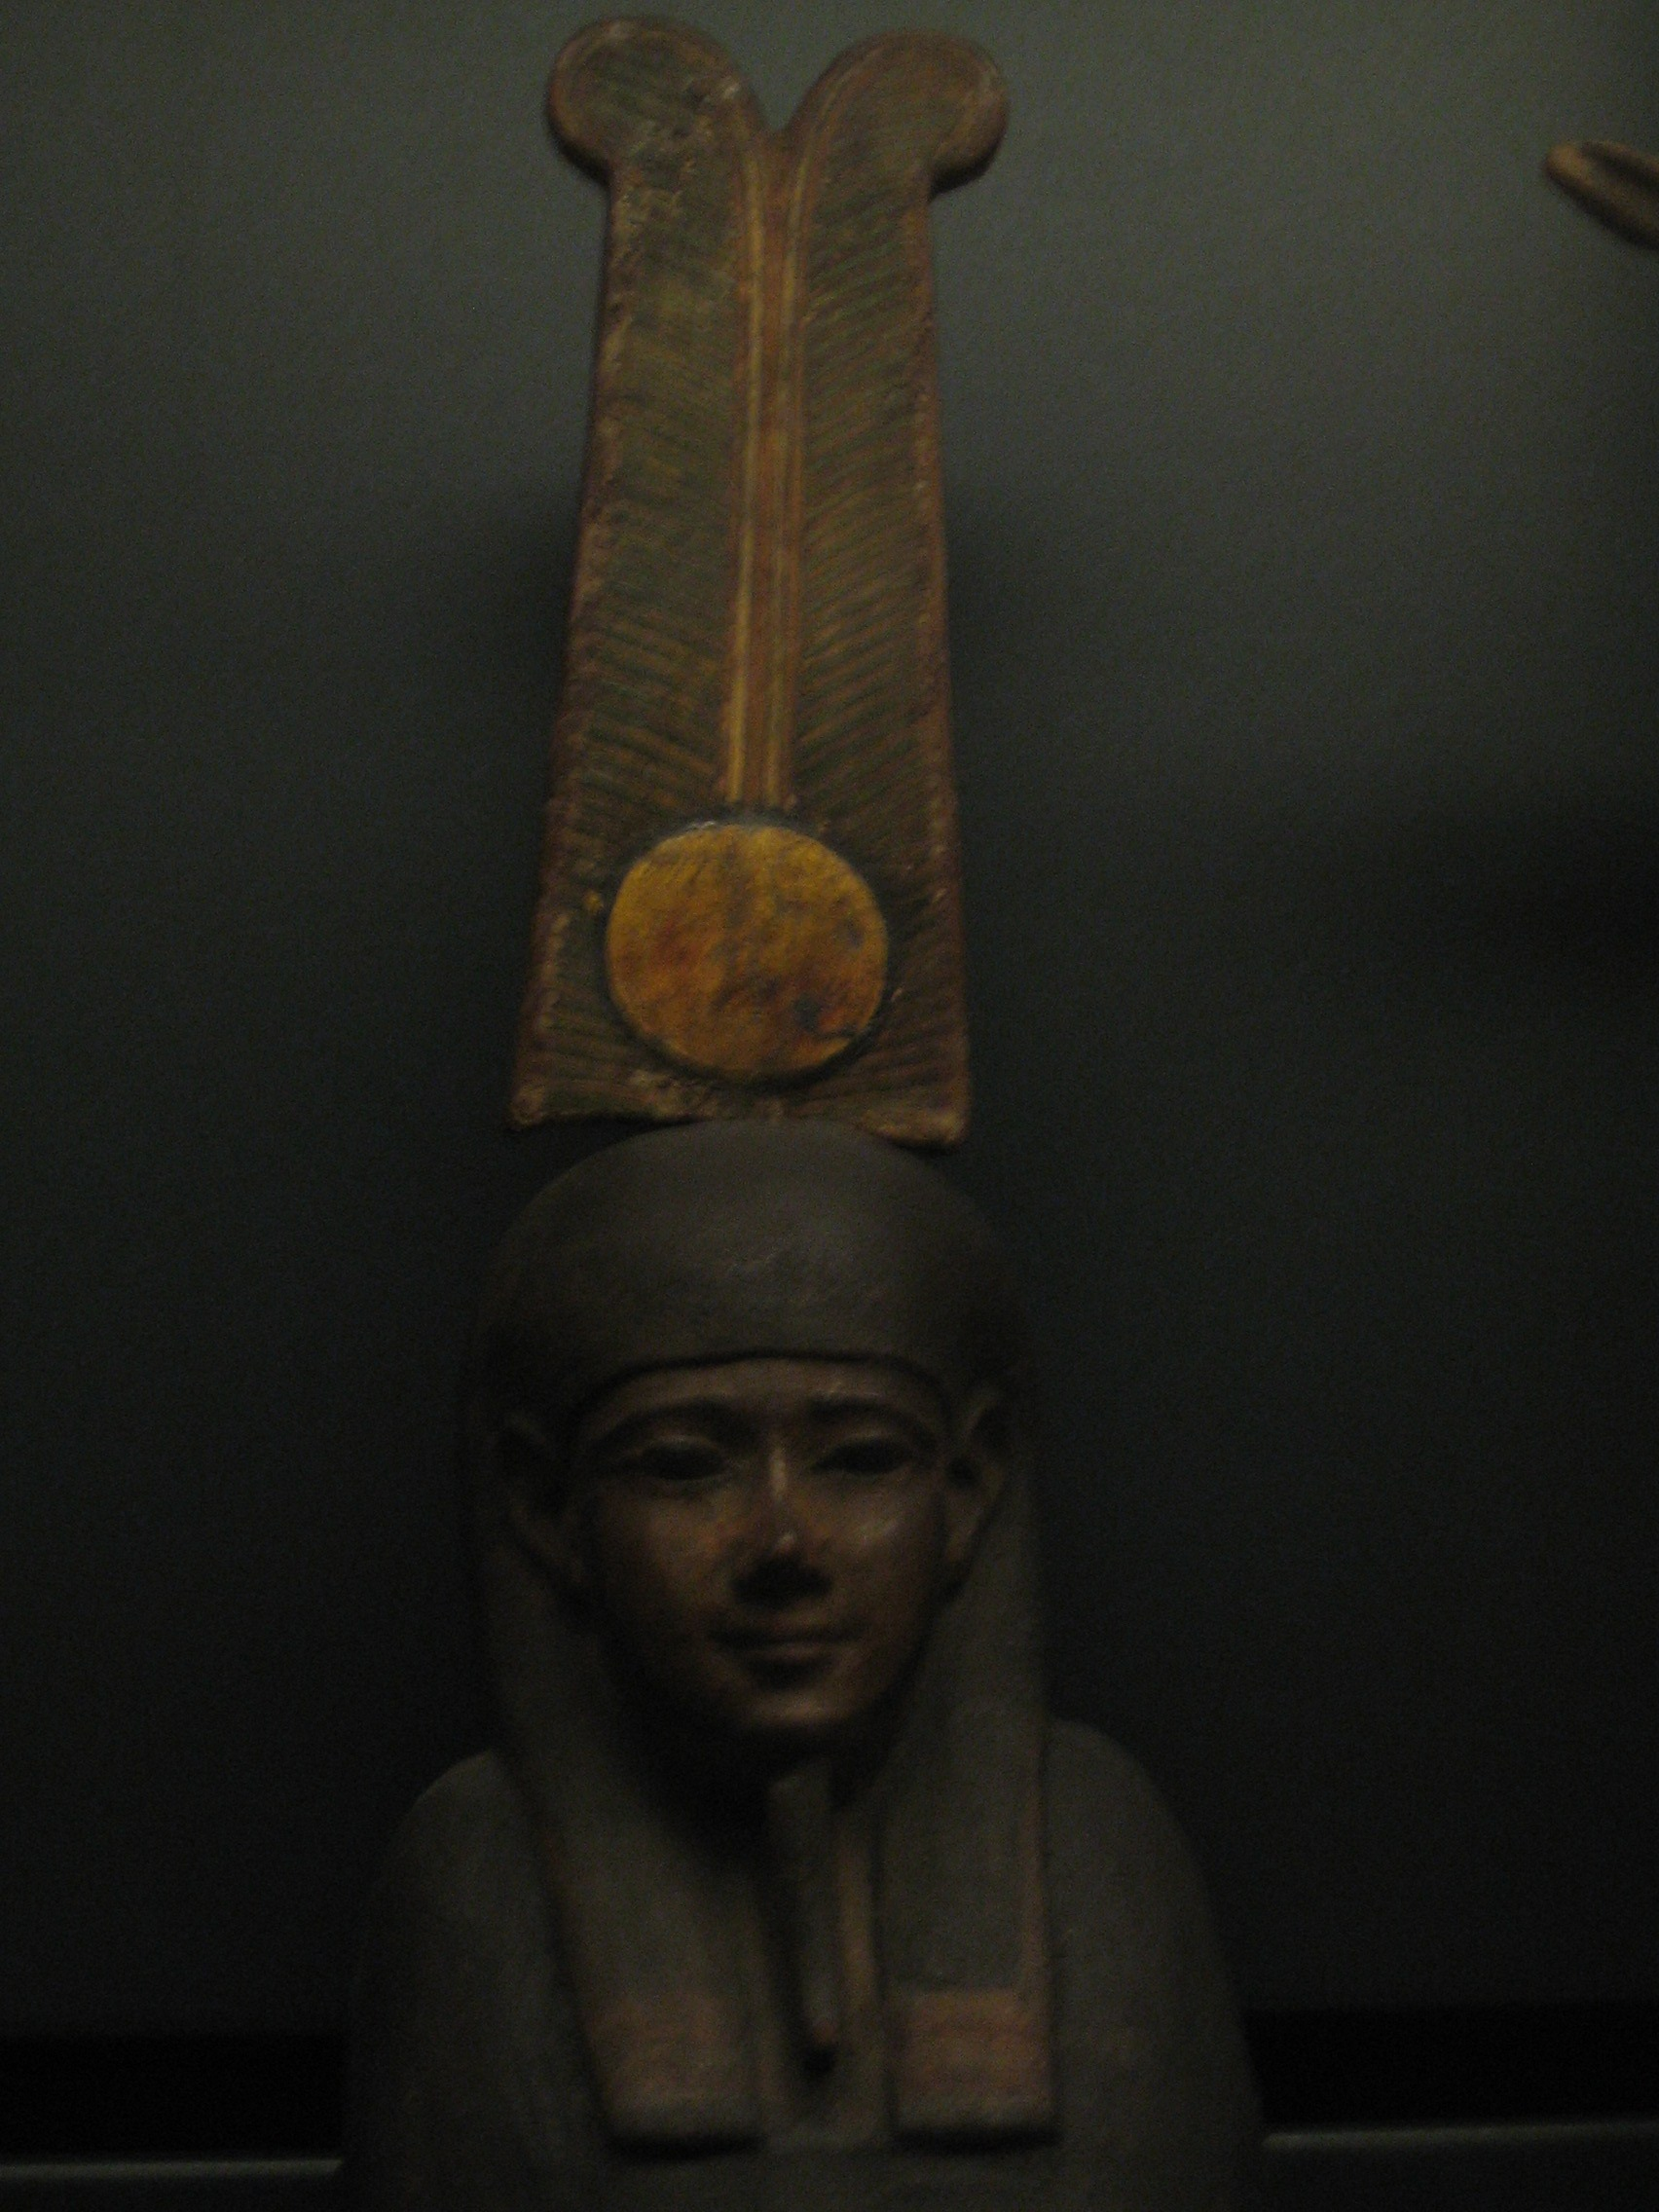 Louvre_egyptos_39.jpg